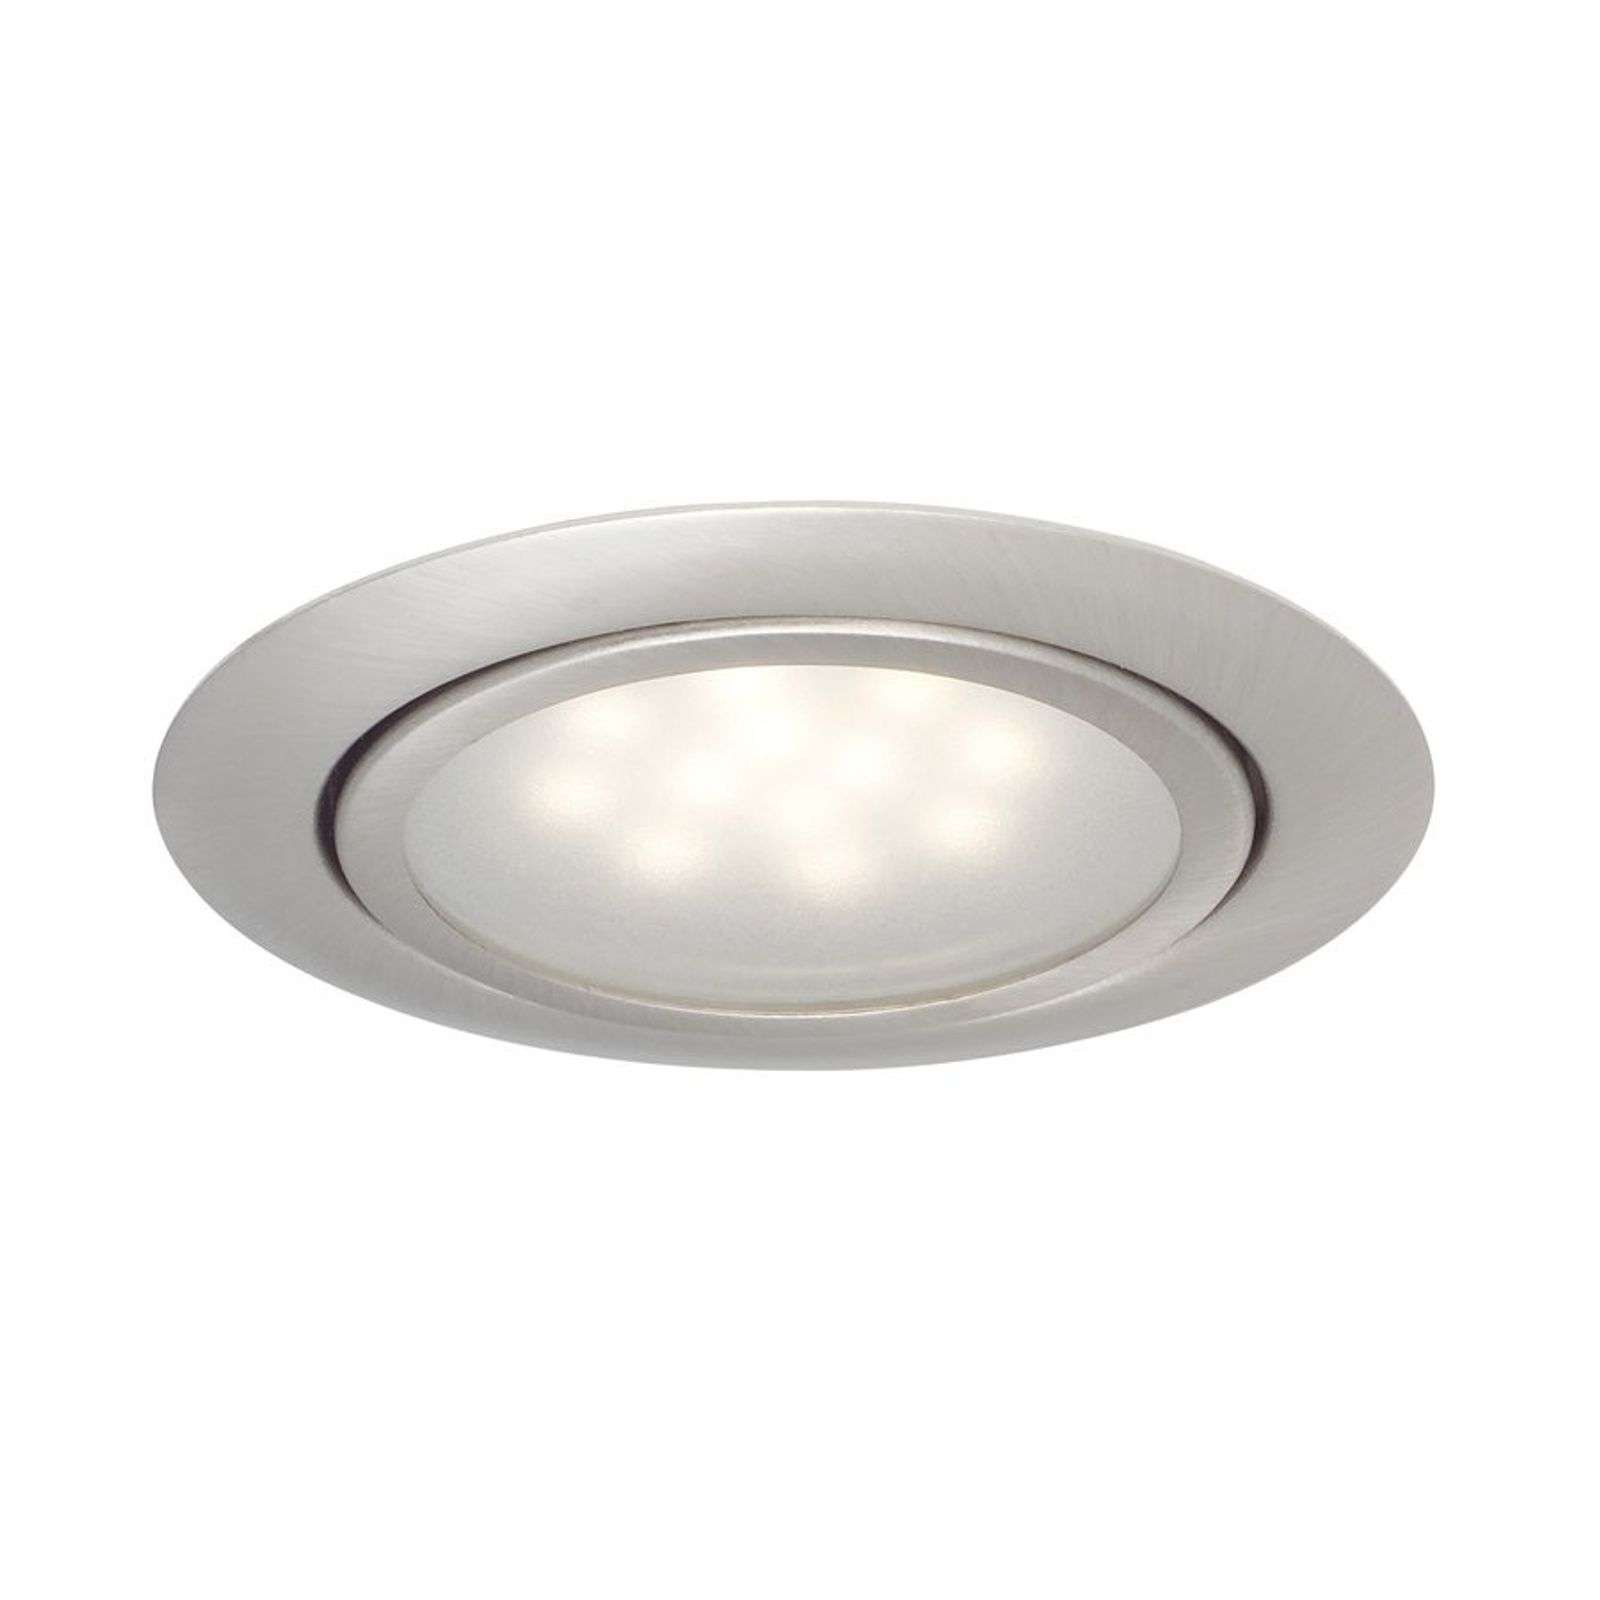 LED recessed light Skinne in 3-set, brushed iron